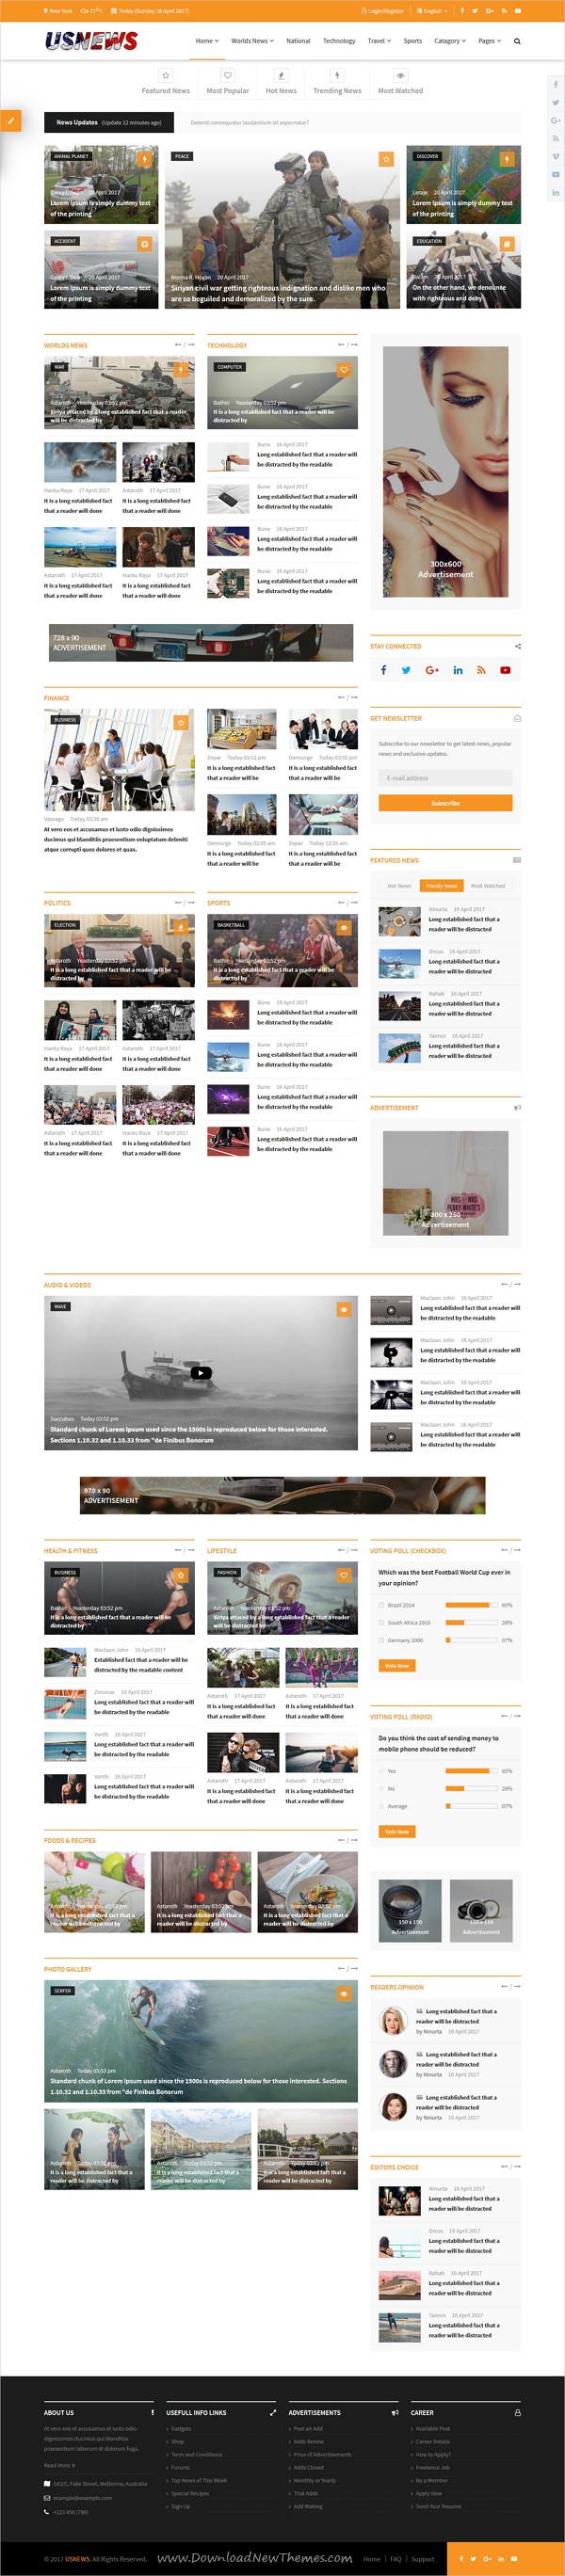 USNews | Multipurpose News, Magazine and Blog HTML5 Template ...